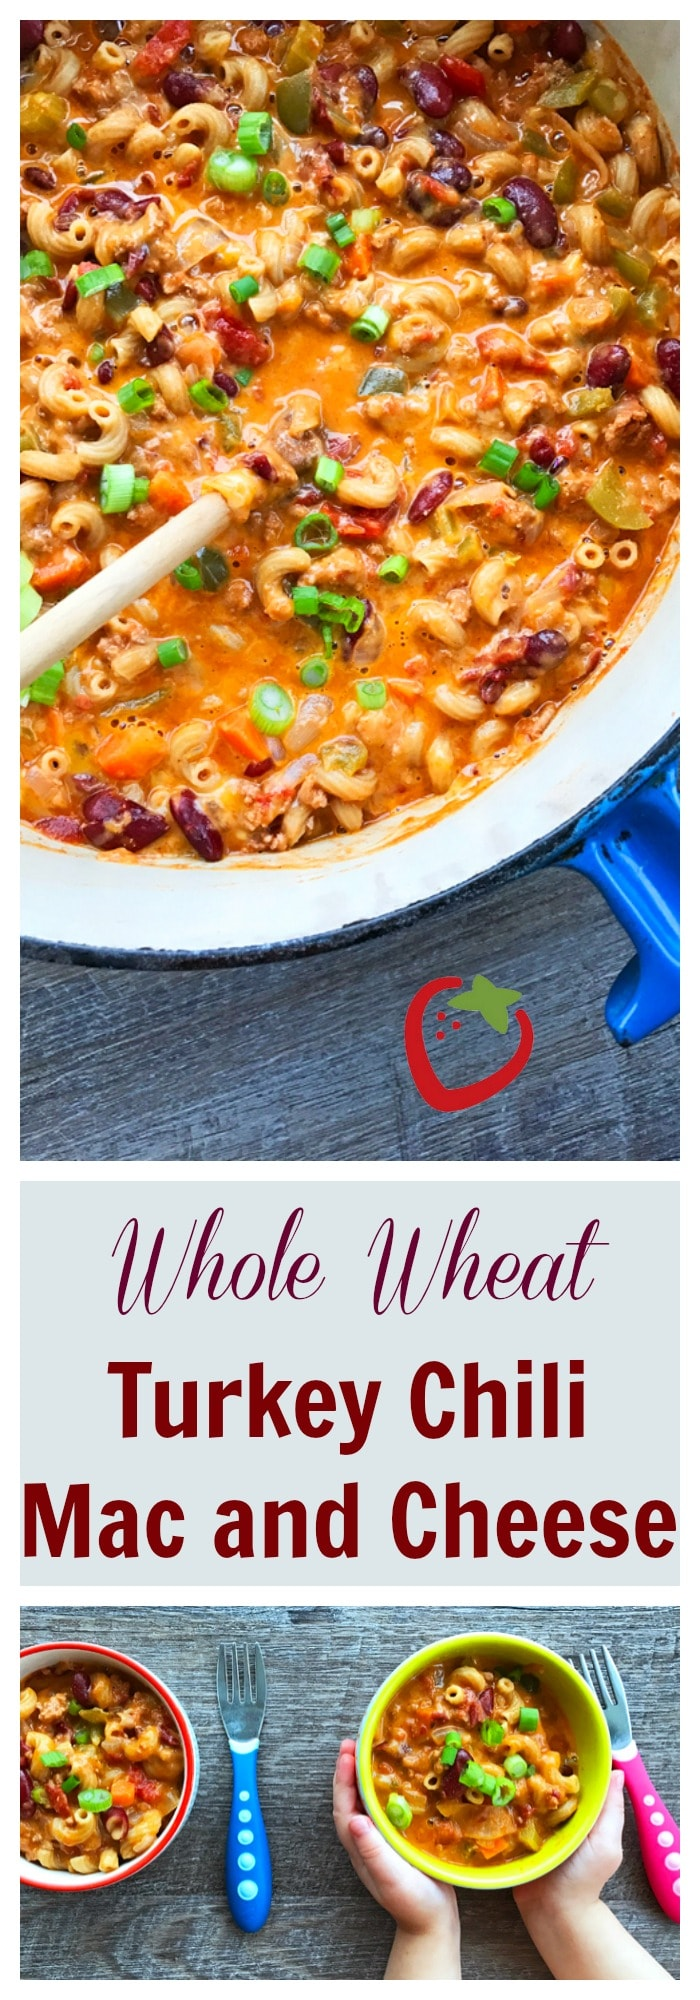 FOOD - Whole Wheat Turkey Chili Mac and Cheese. Southwestern flavor meets comfort food meets healthy family dinner. http://www.superhealthykids.com/mac/